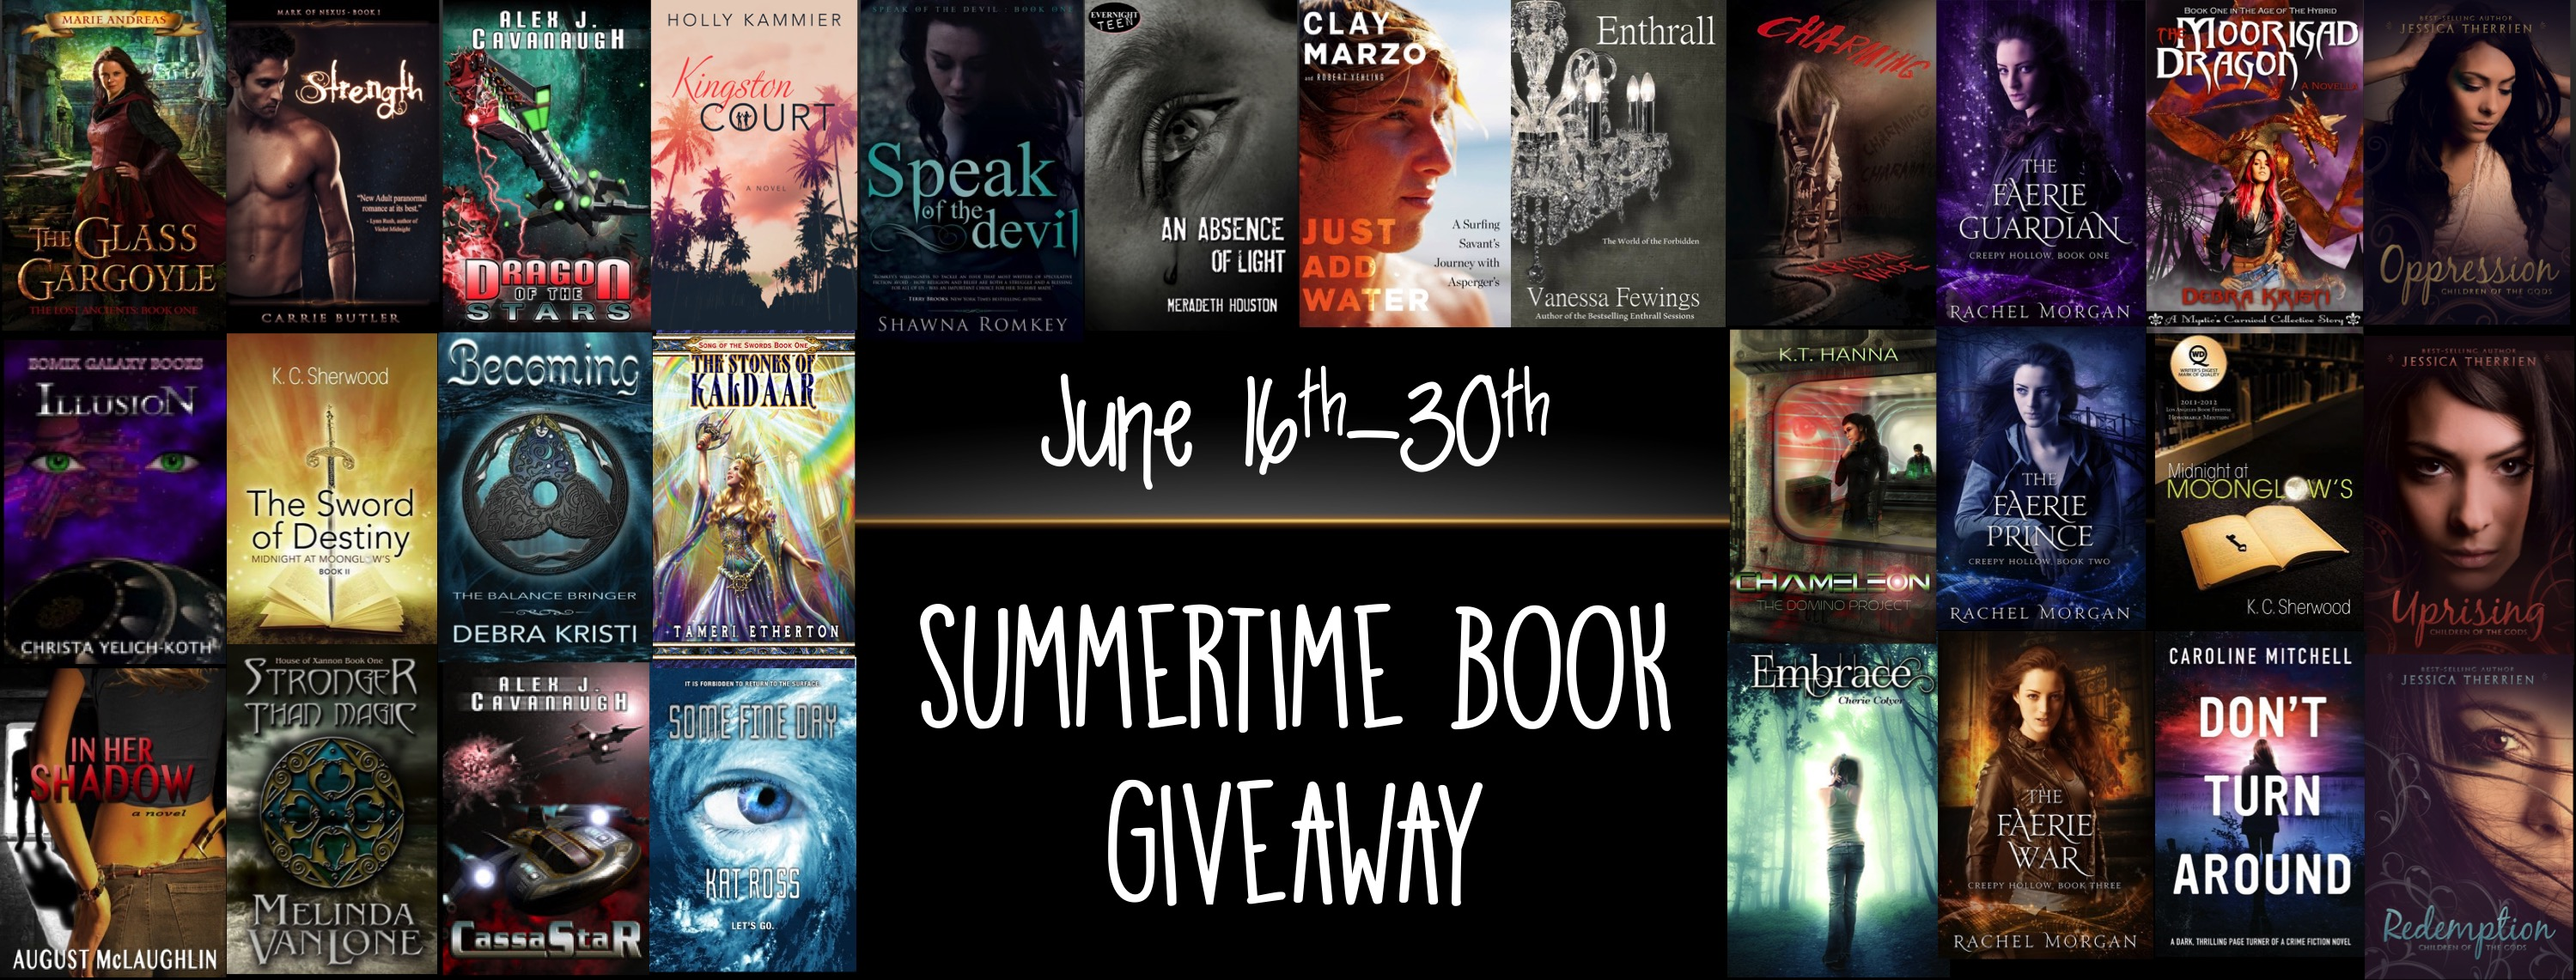 Summertime Book Giveaway!